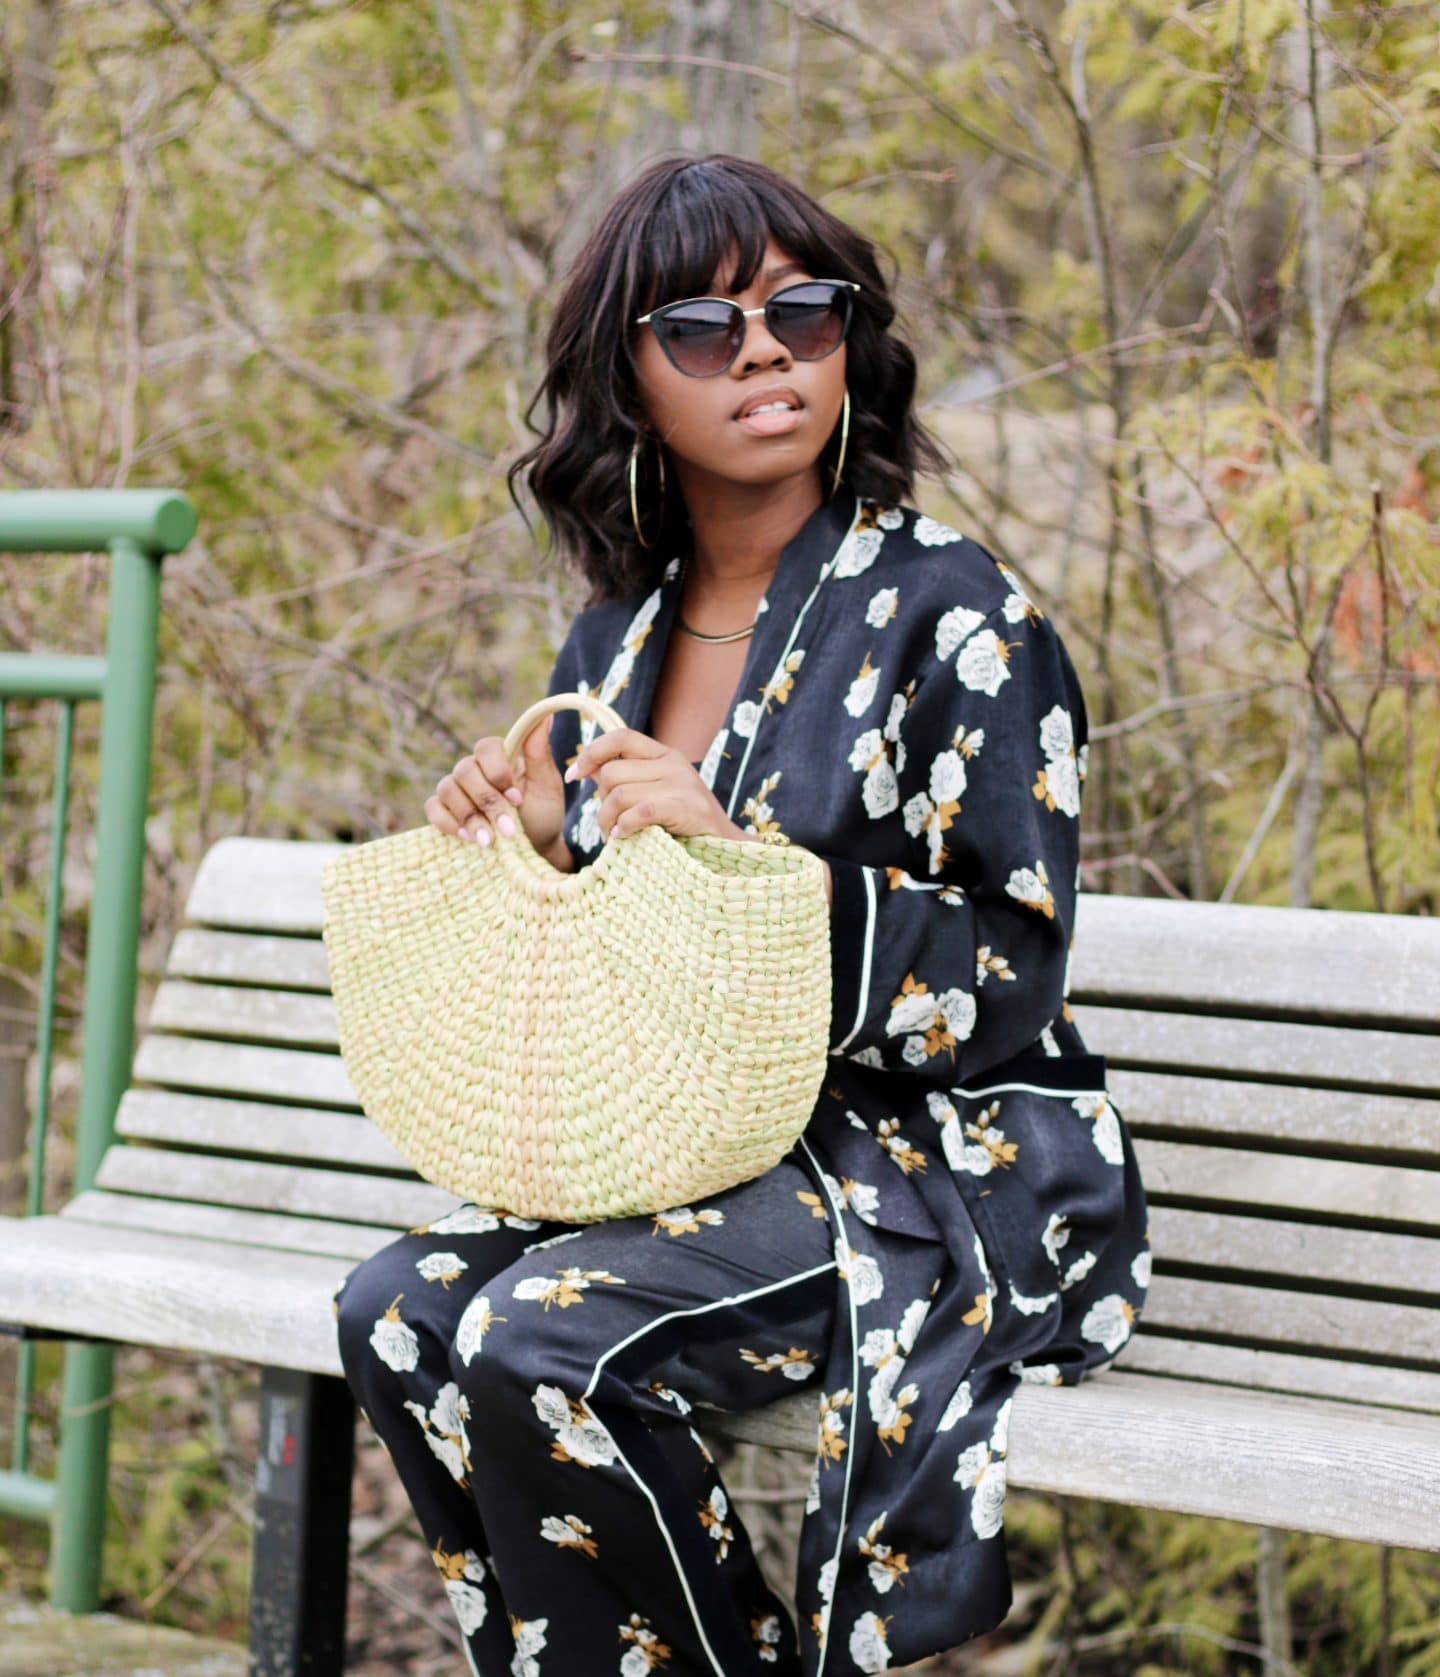 PAJAMA CHIC – HOW TO WEAR THE SLEEPWEAR-INSPIRED TREND